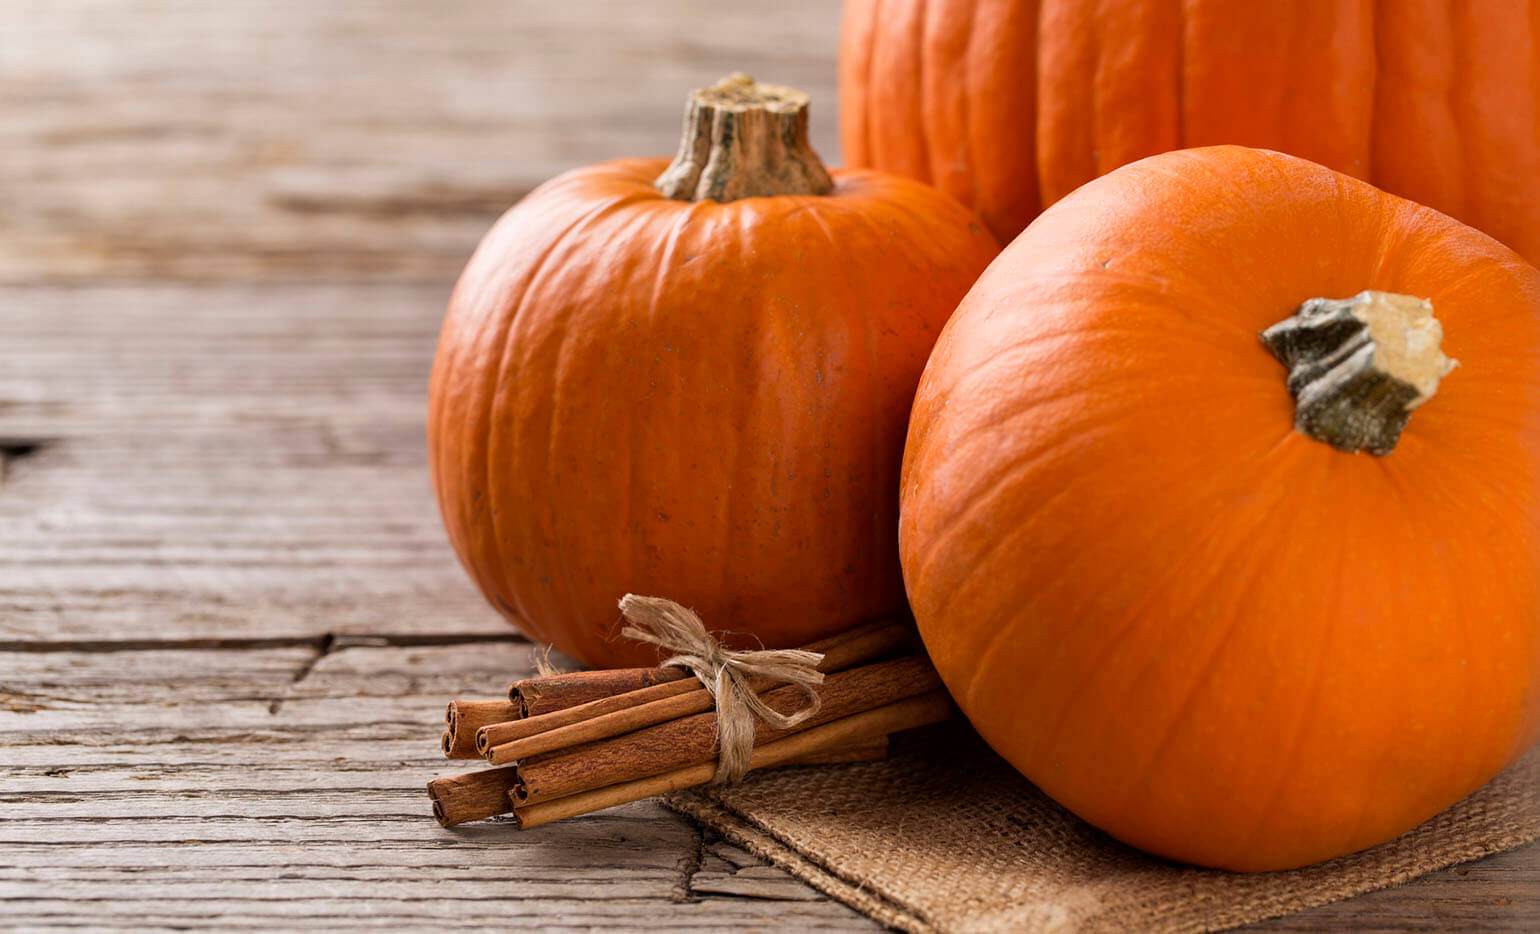 Pumpkin Wallpapers High Quality | Download Free